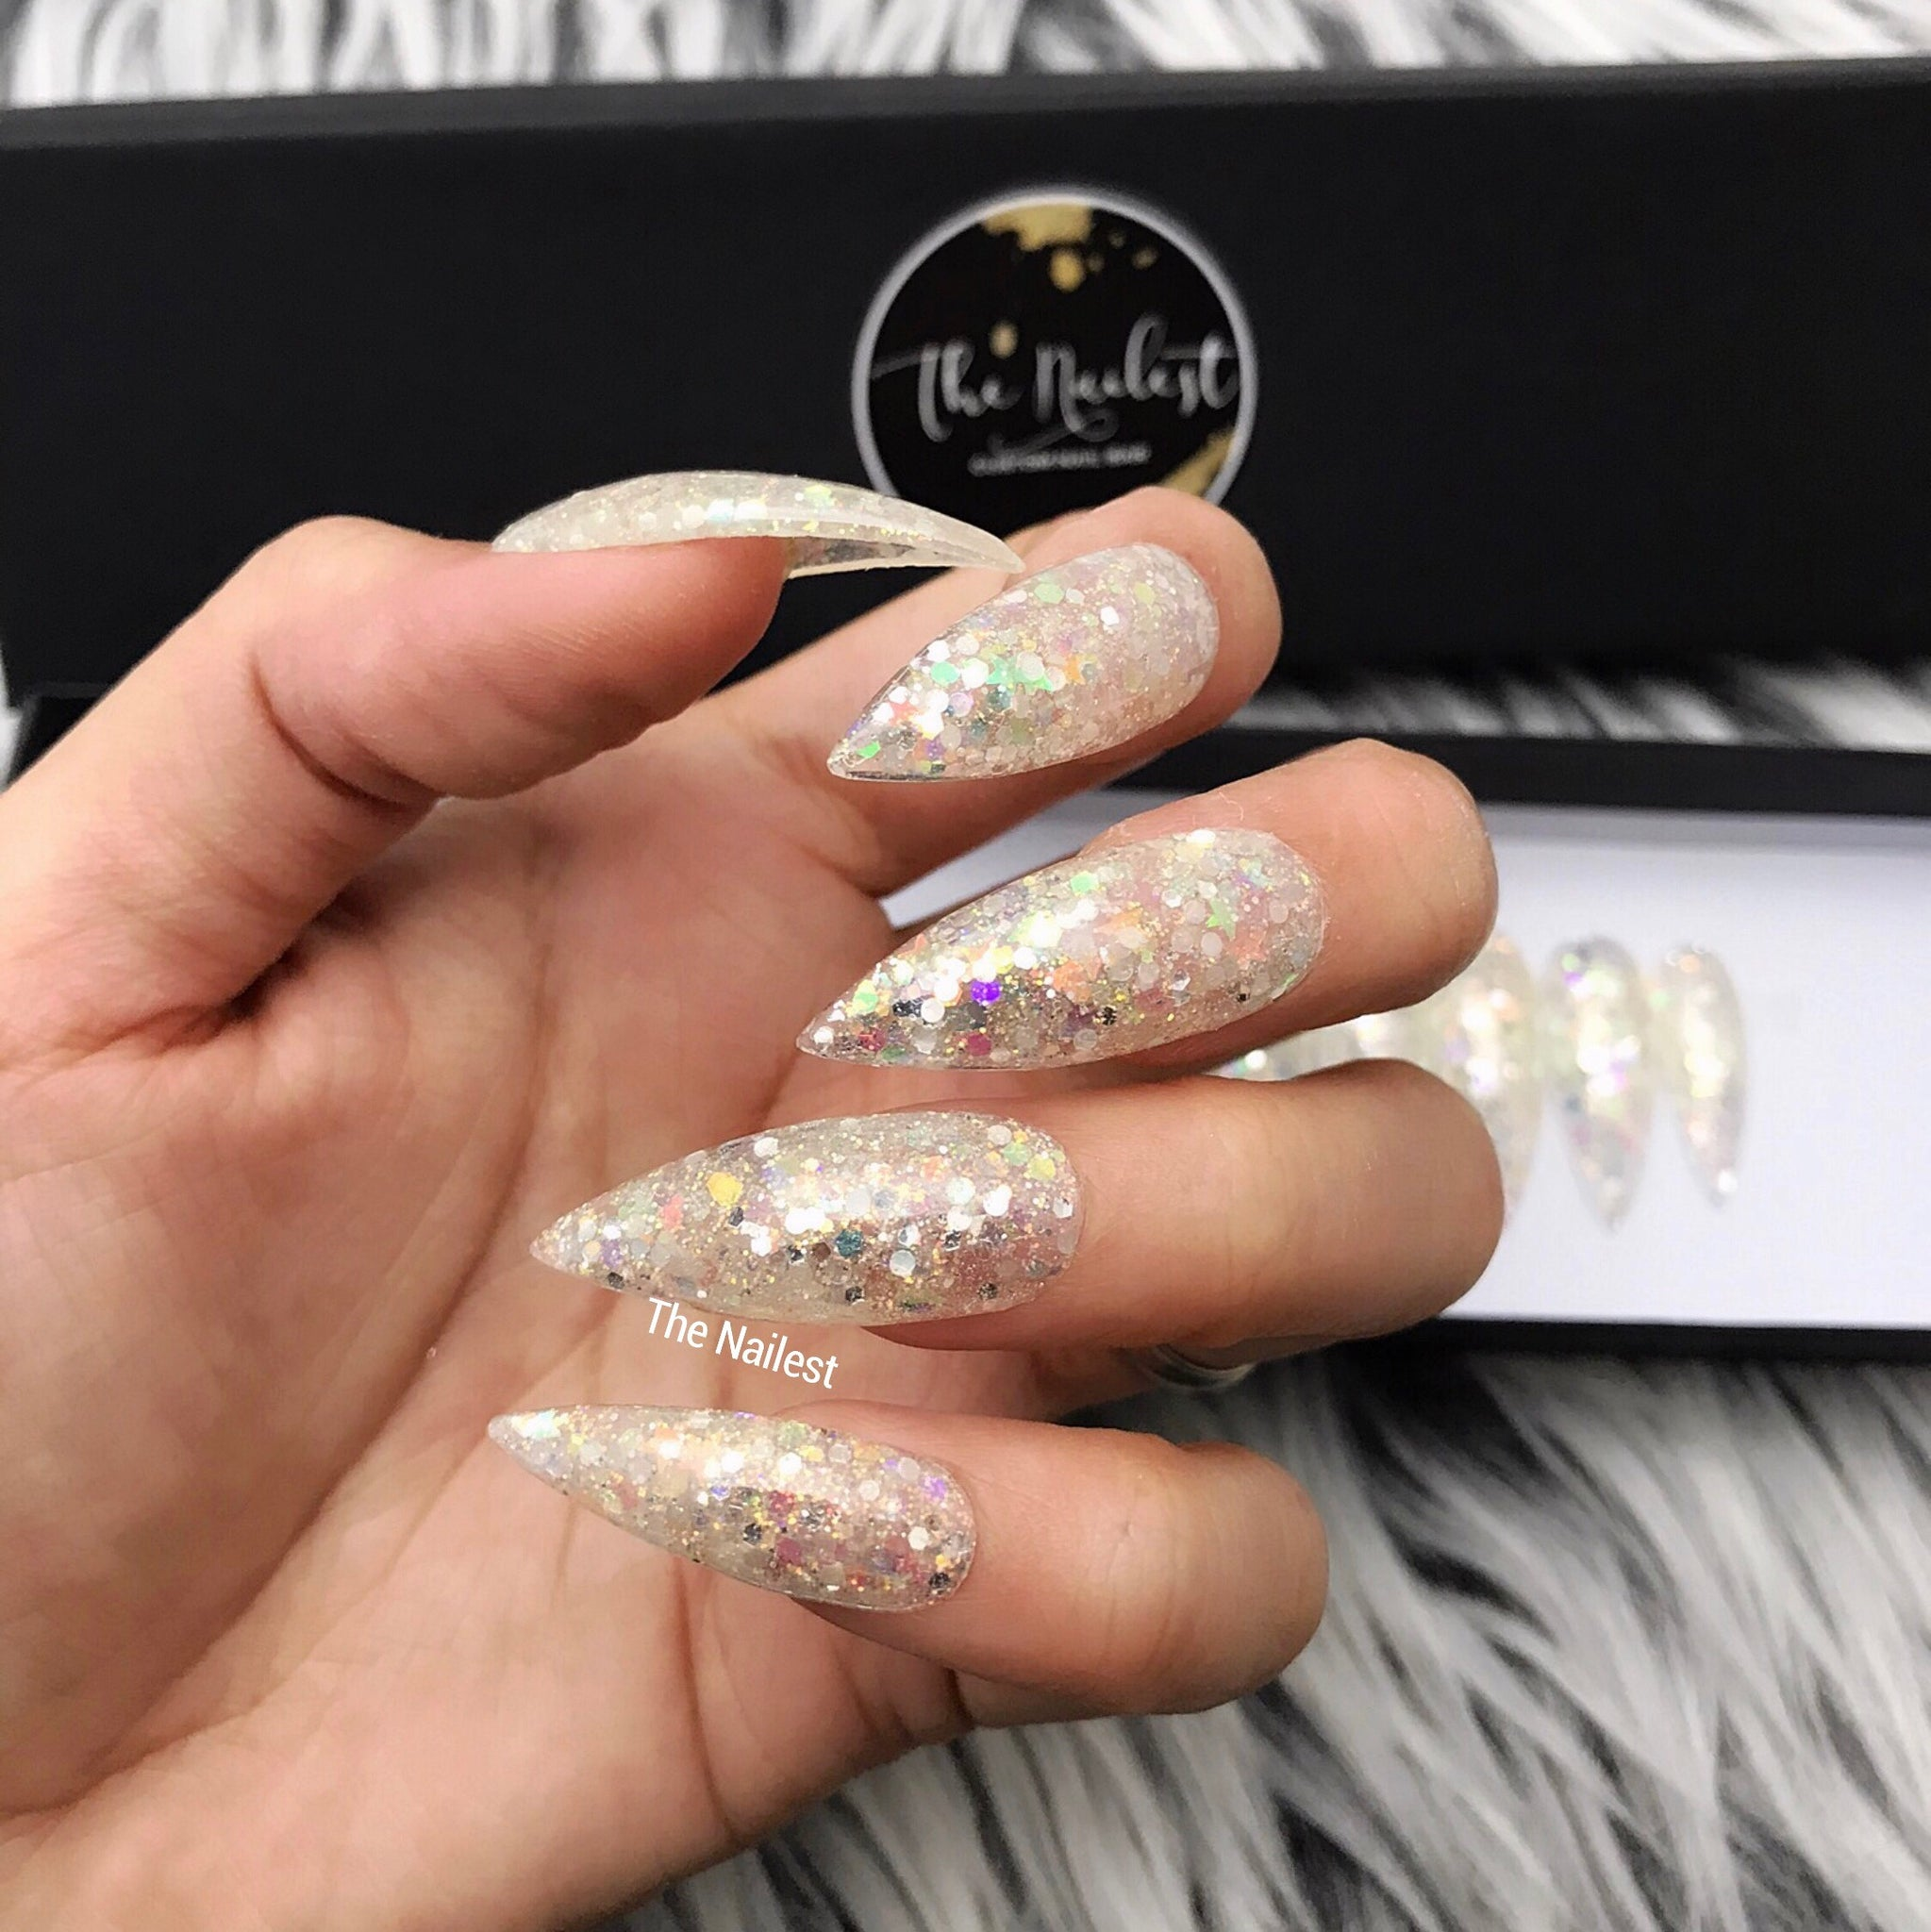 HANDMADE- CLEAR STARBURST GLOSSY CLEAR IRIDESCENT GLITTER MIX